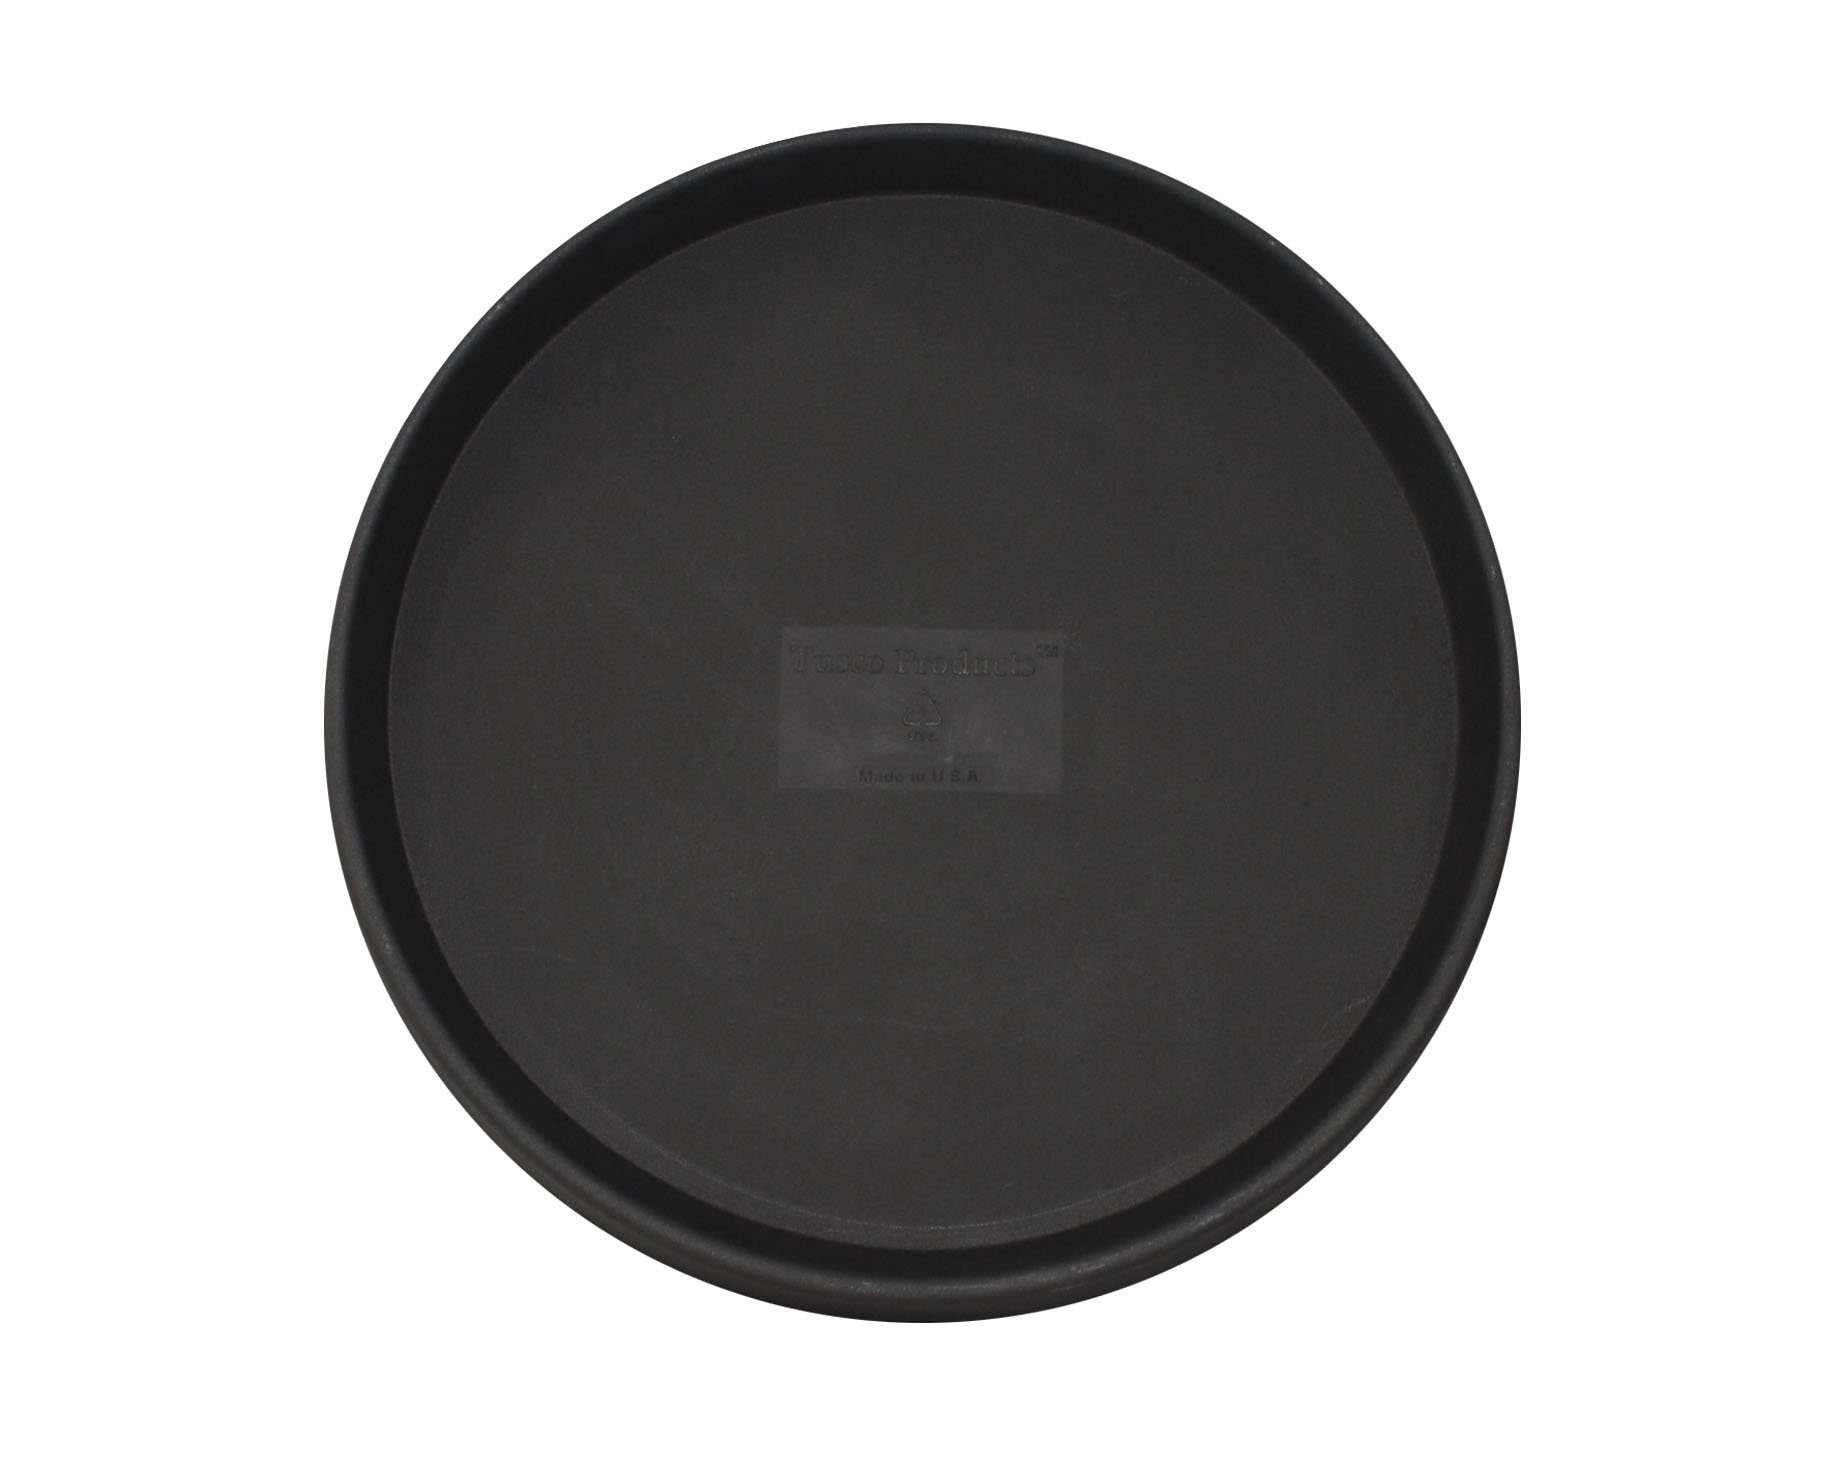 Tusco Products TR26BK Round Saucer, 26-Inch Diameter, Black